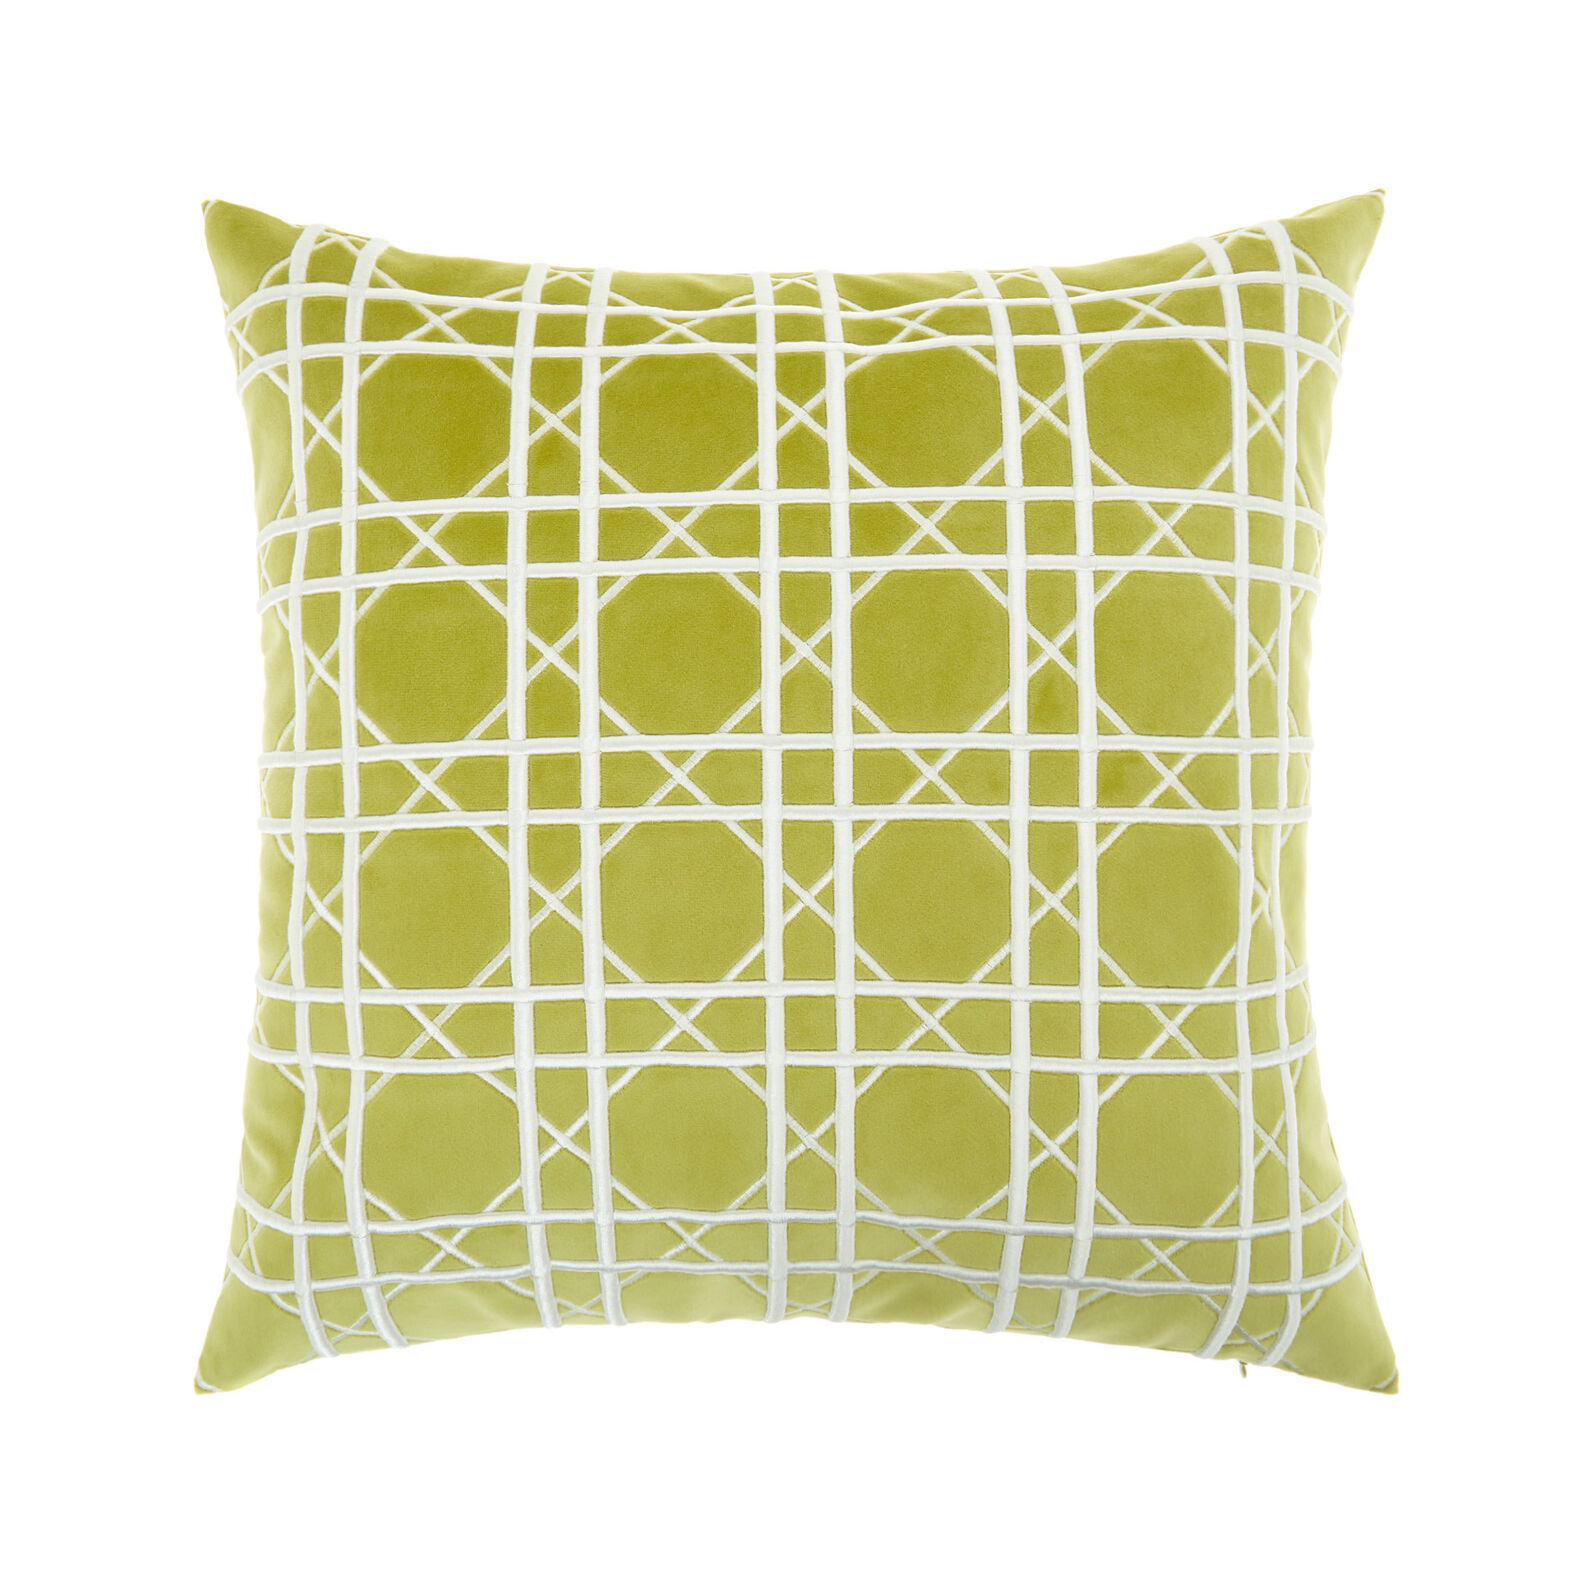 Cotton cushion with geometric embroidery (45x45cm)